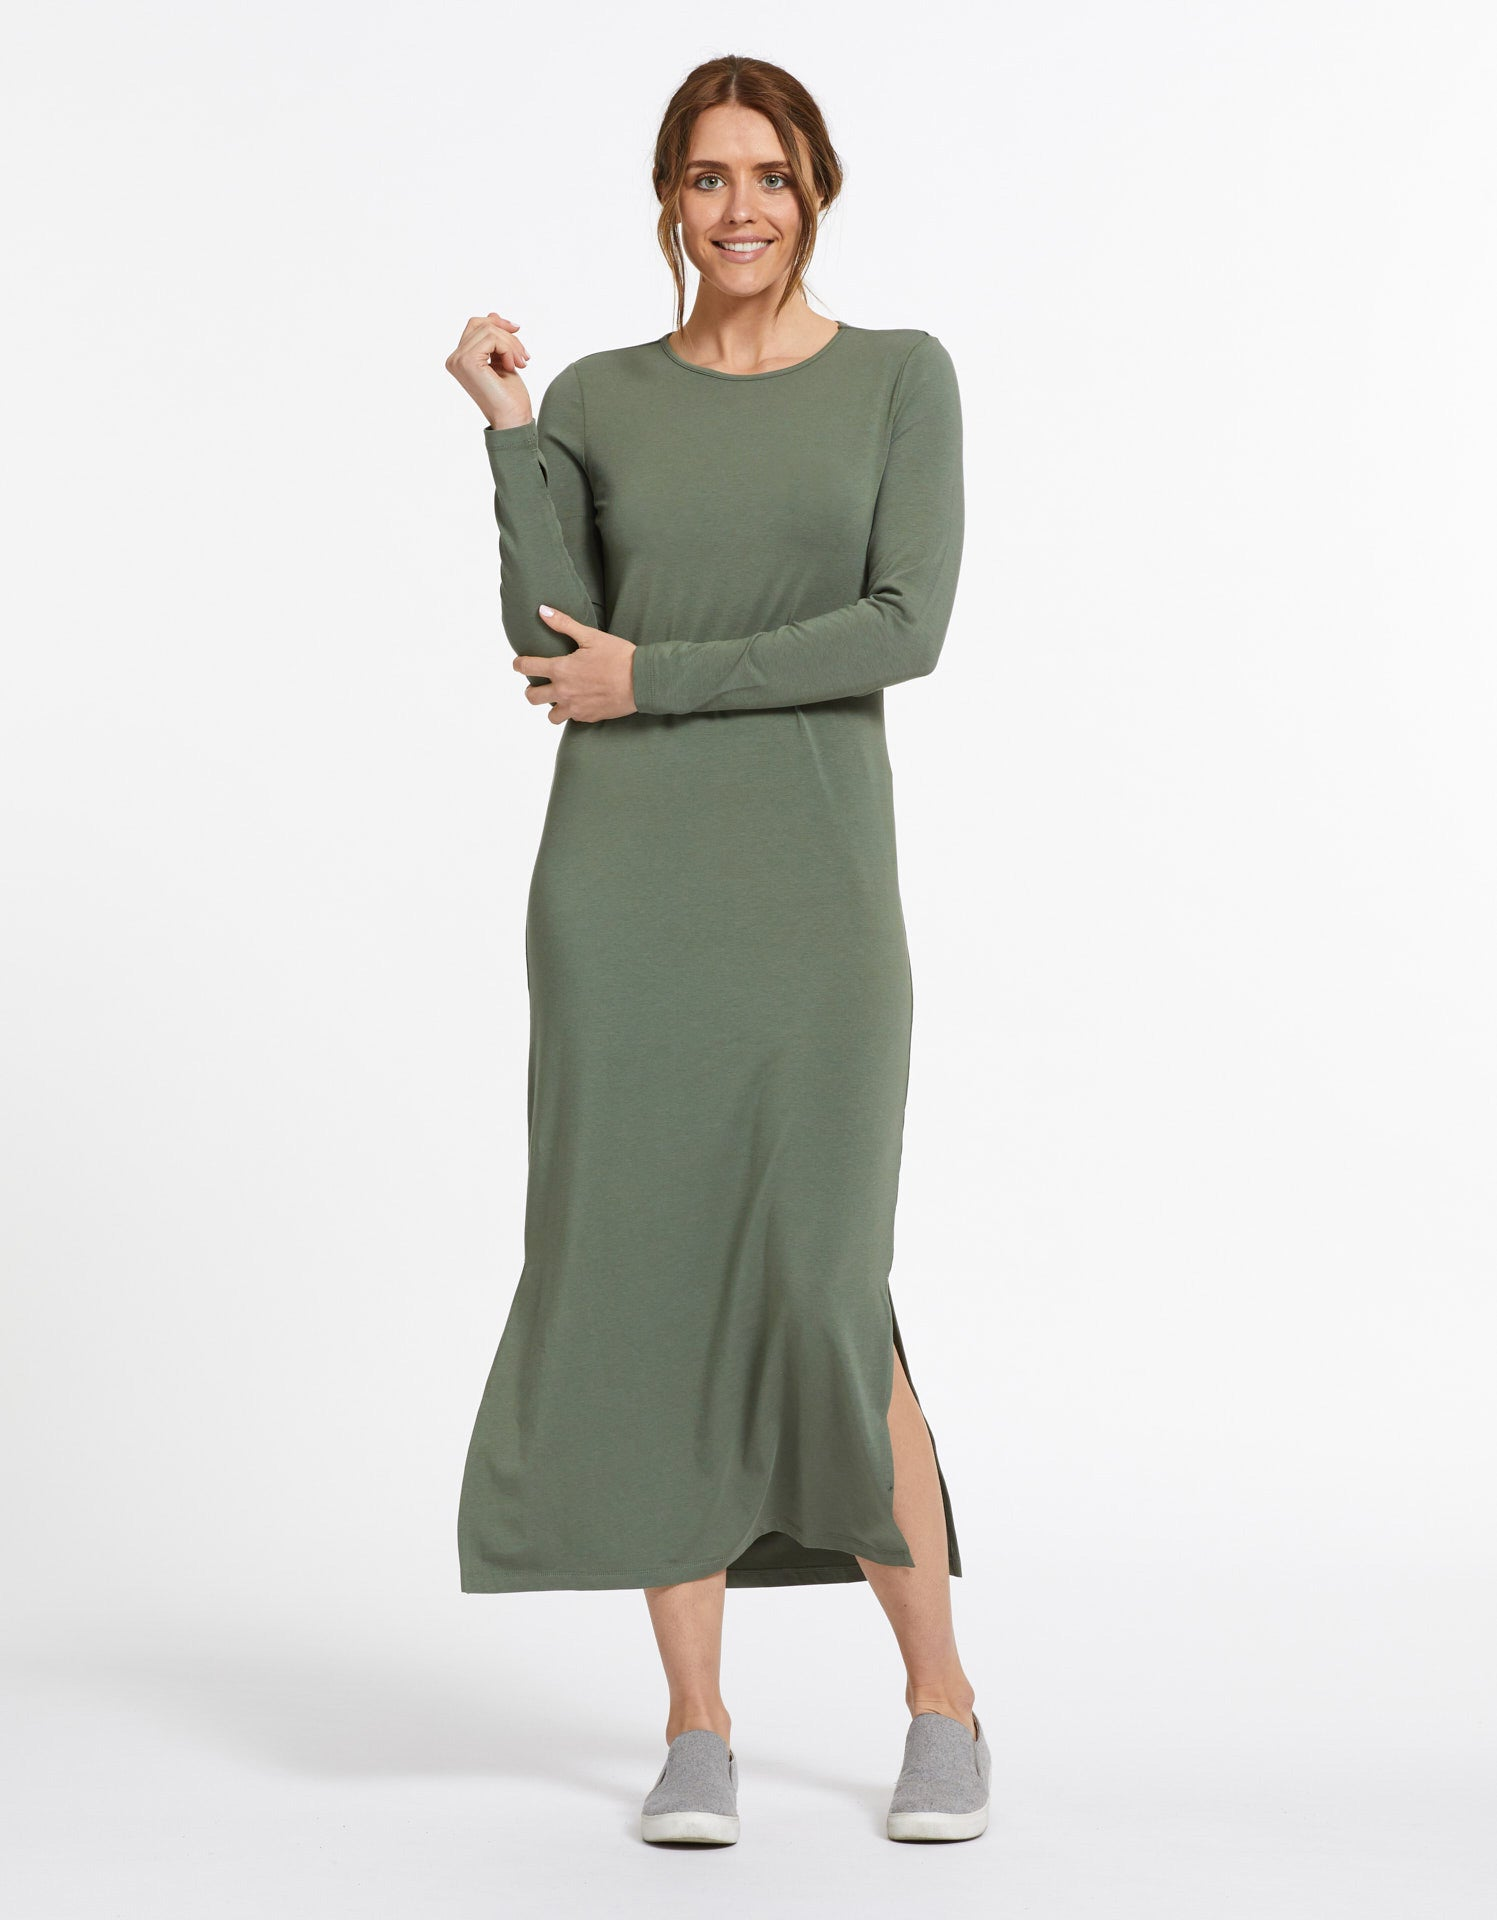 Solbari Sun Protection UPF50+ Women's Long Sleeve Maxi Dress Sensitive Collection in Eucalyptus